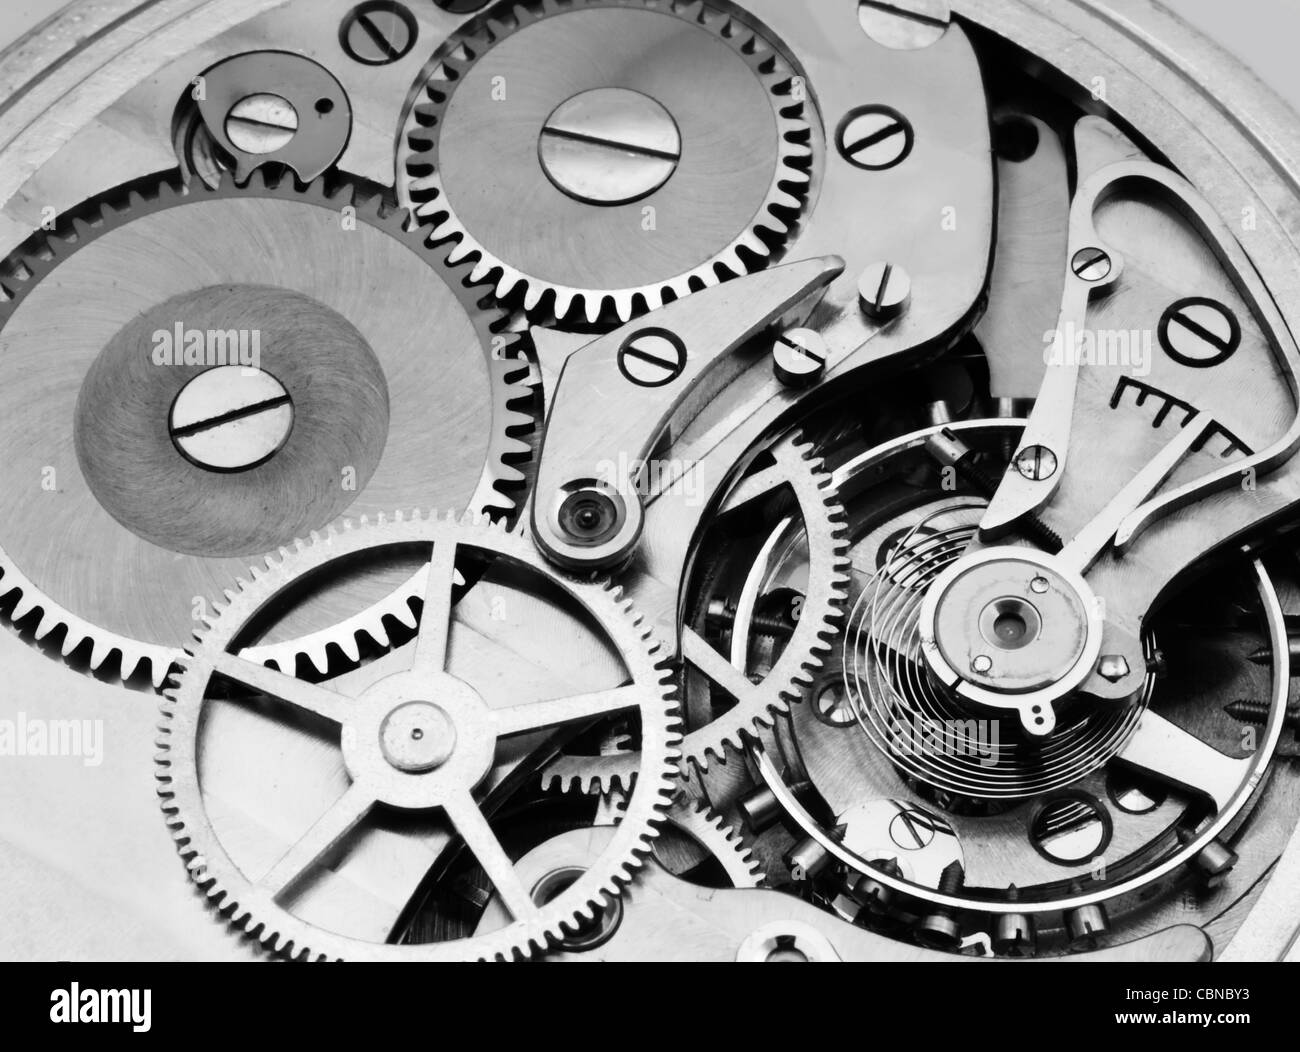 mechanism of a pocket watch timepiece showing gears and